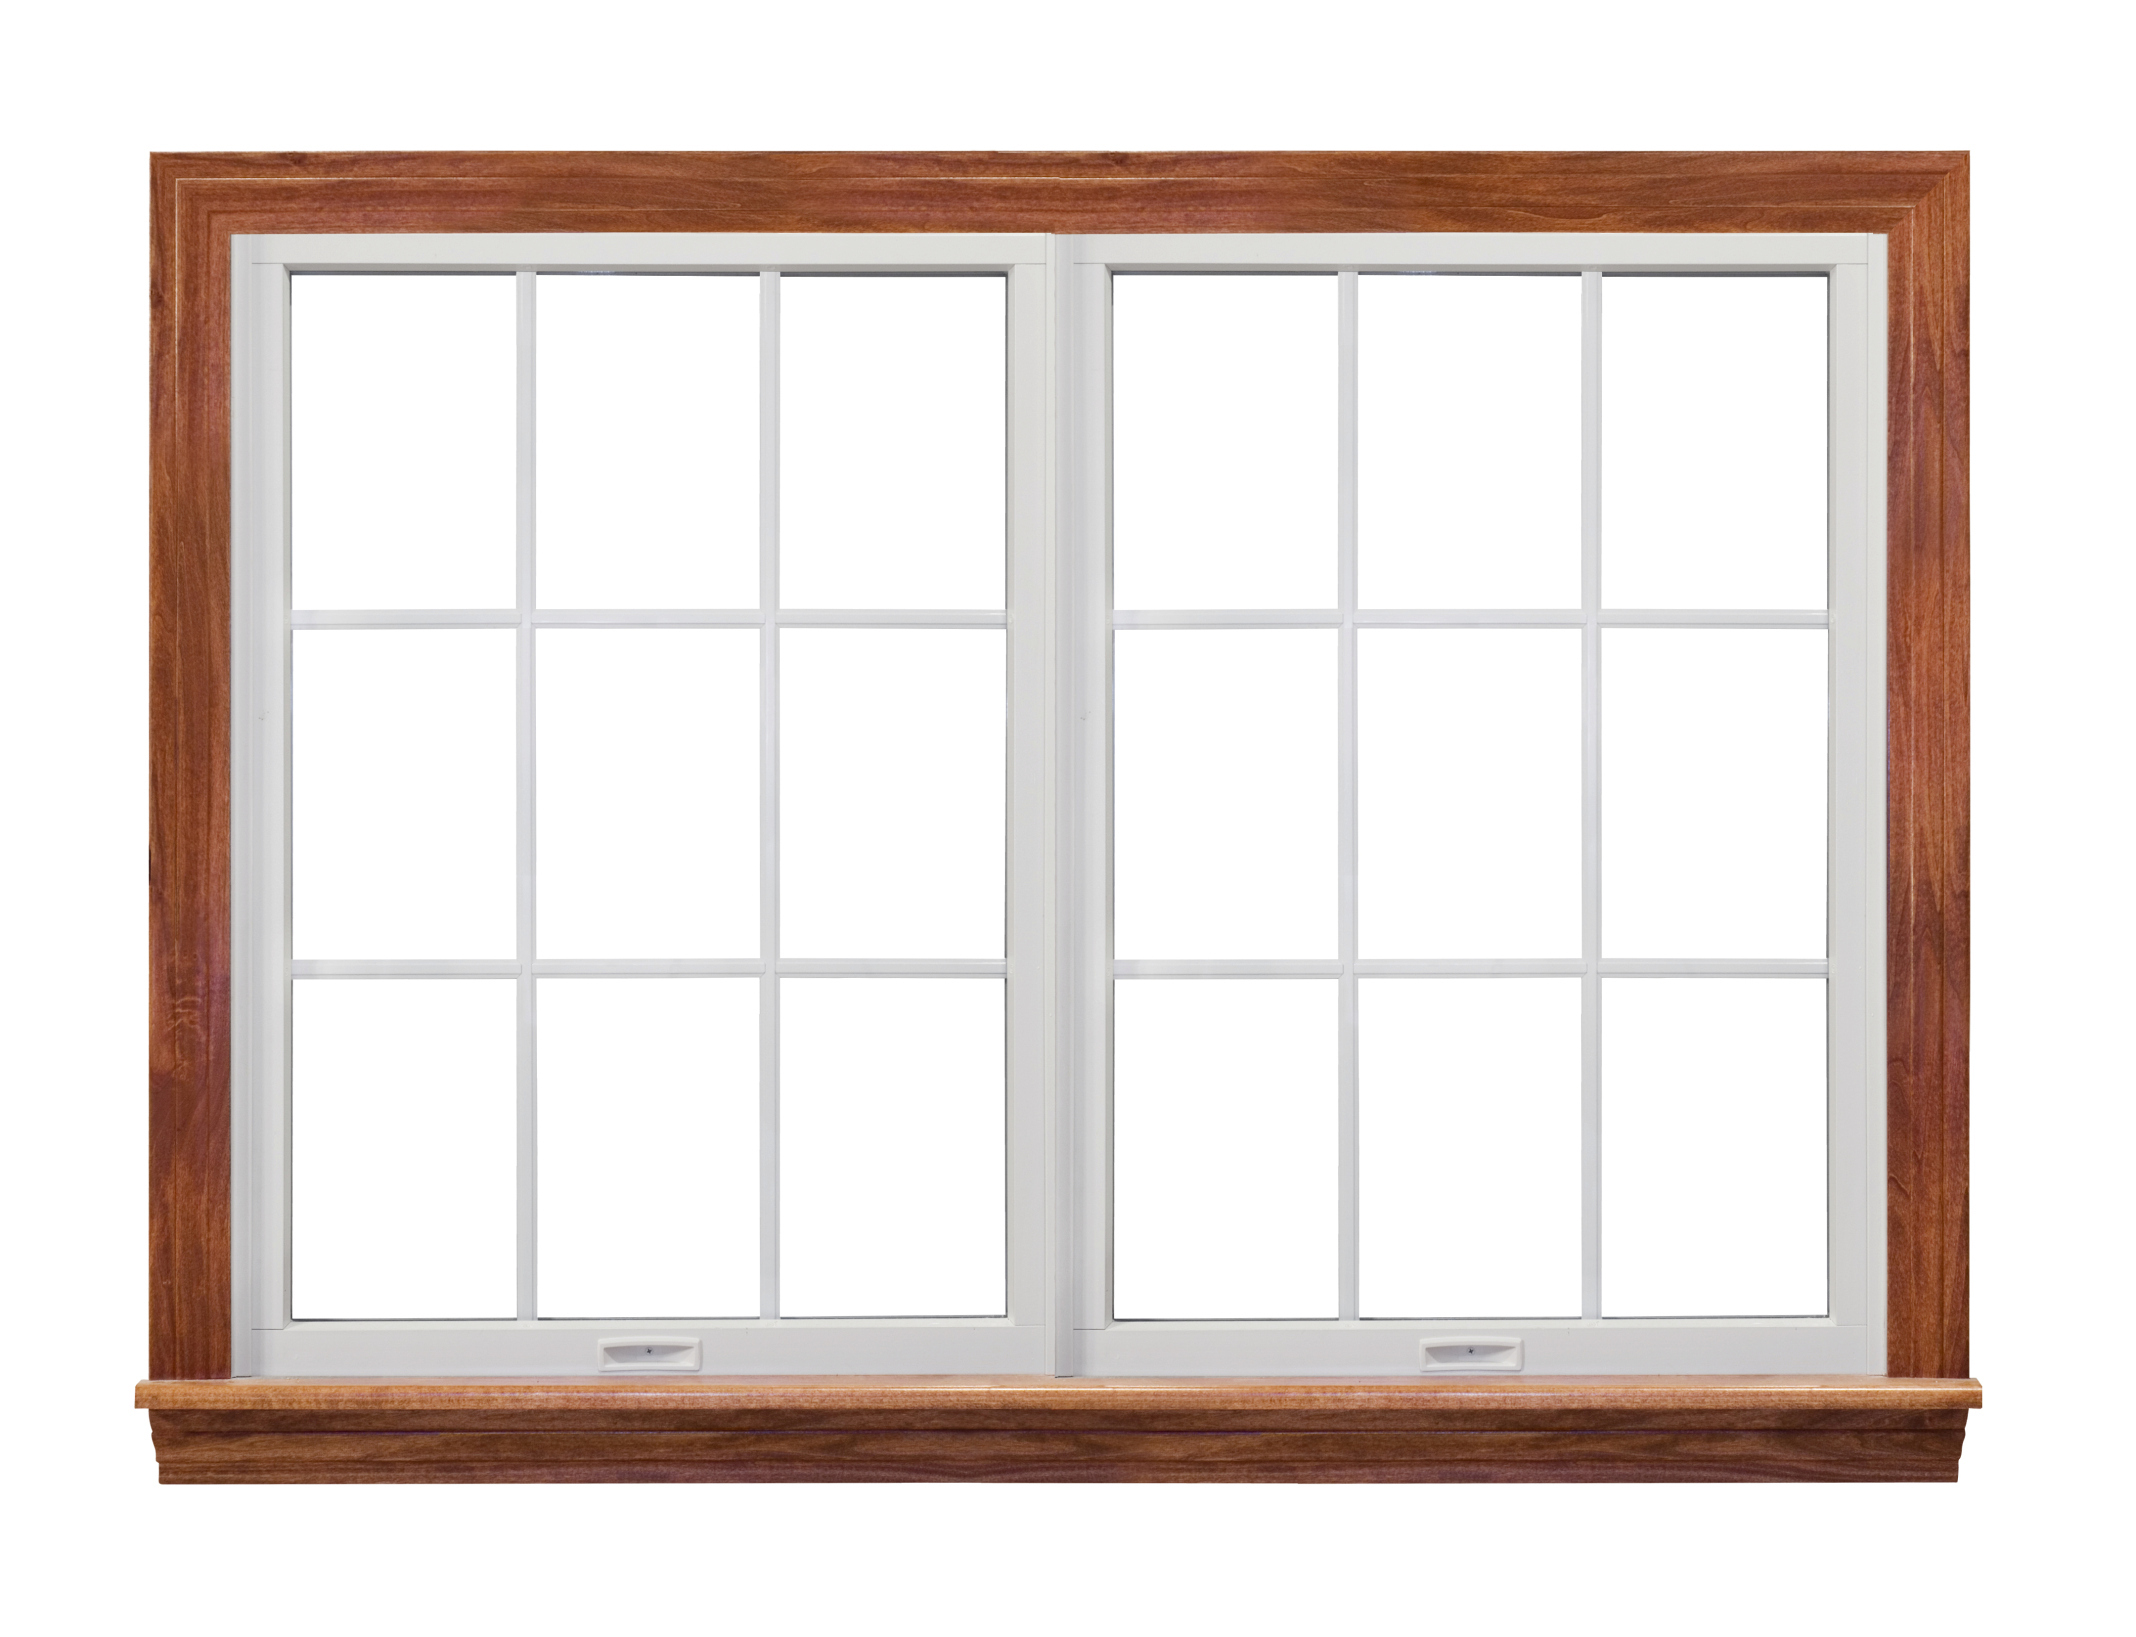 Http Www Moonworkshome Com Blog Should You Consider Double Glazed Windows